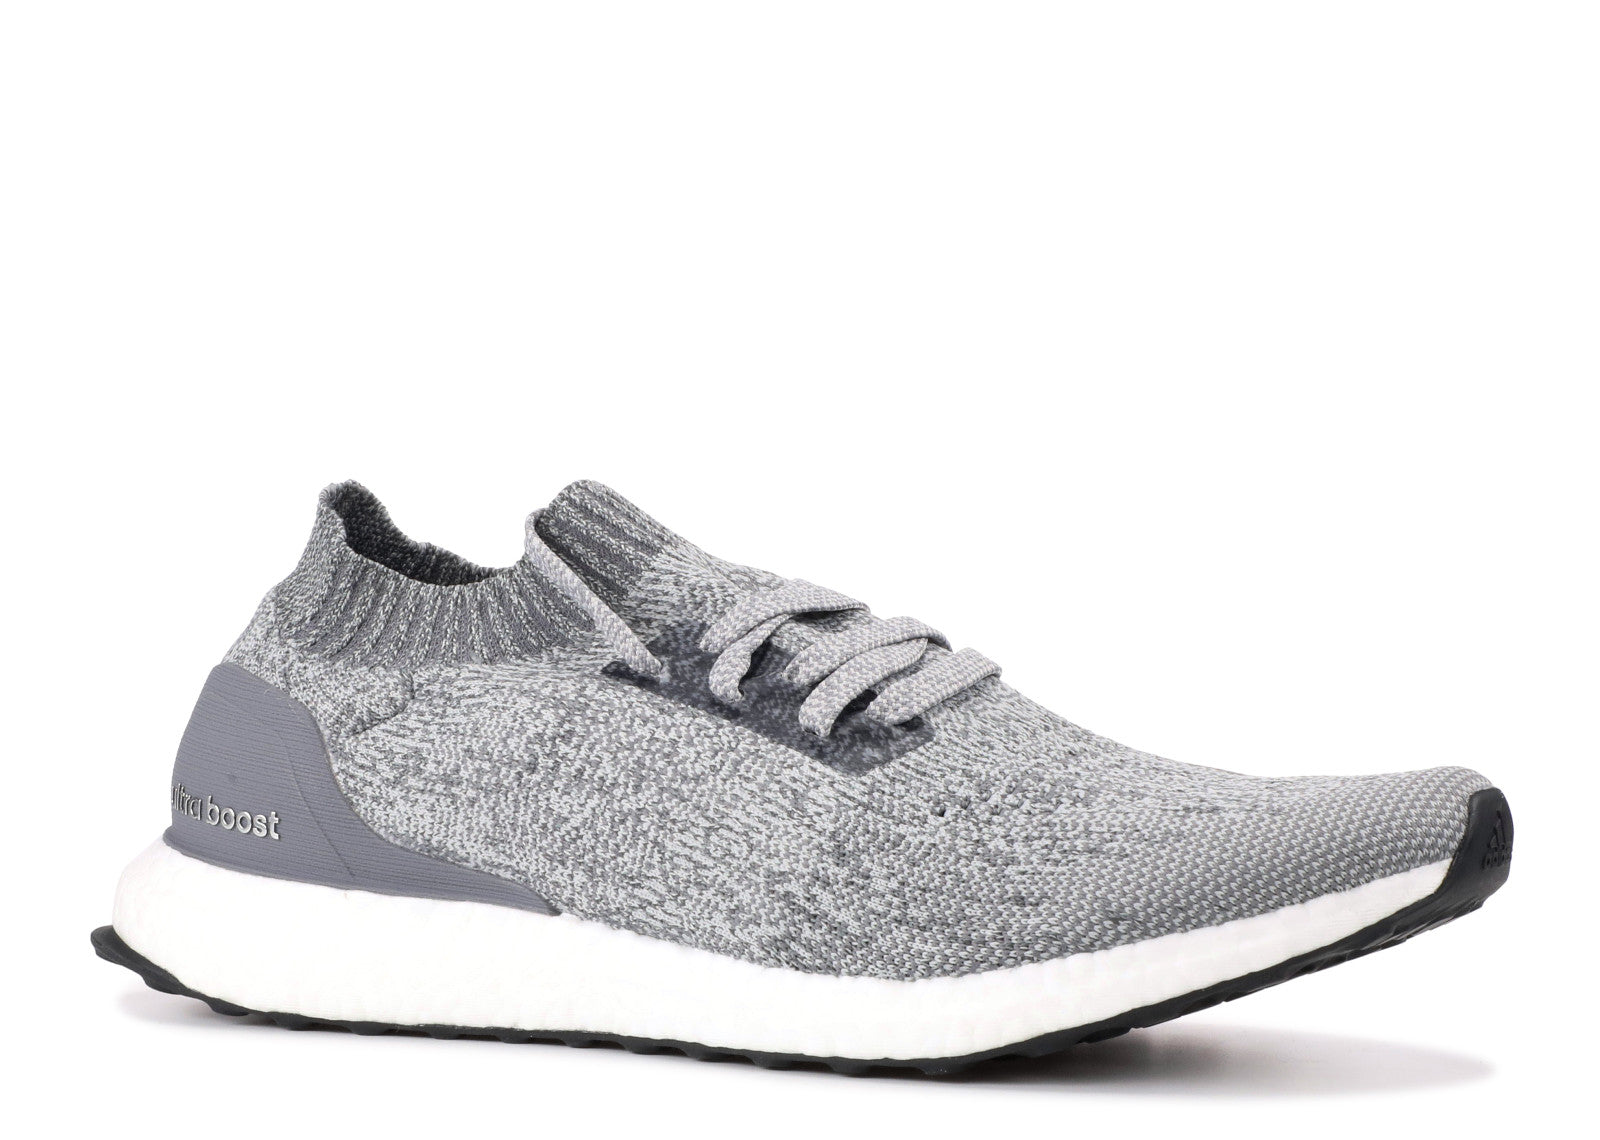 bdbdb954ba2d5 ... release date adidas ultra boost uncaged clear grey sneakers 5 40c1c  a52b1 promo code 2017 adidas ultra boost 3.0 ...